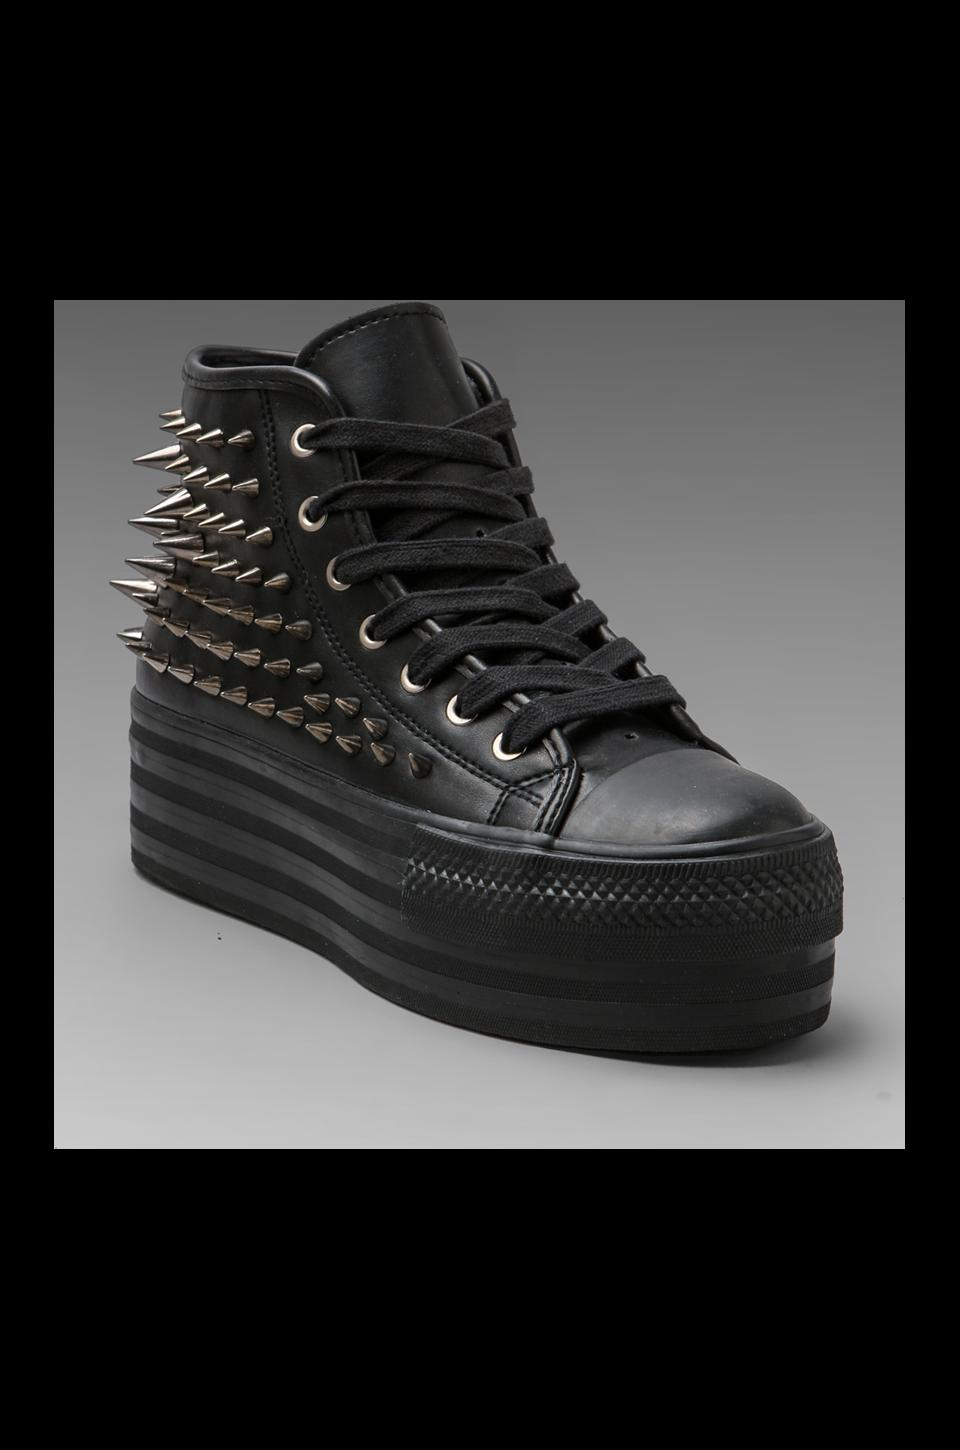 UNIF Koop Leather Studded Sneaker in Black/Silver